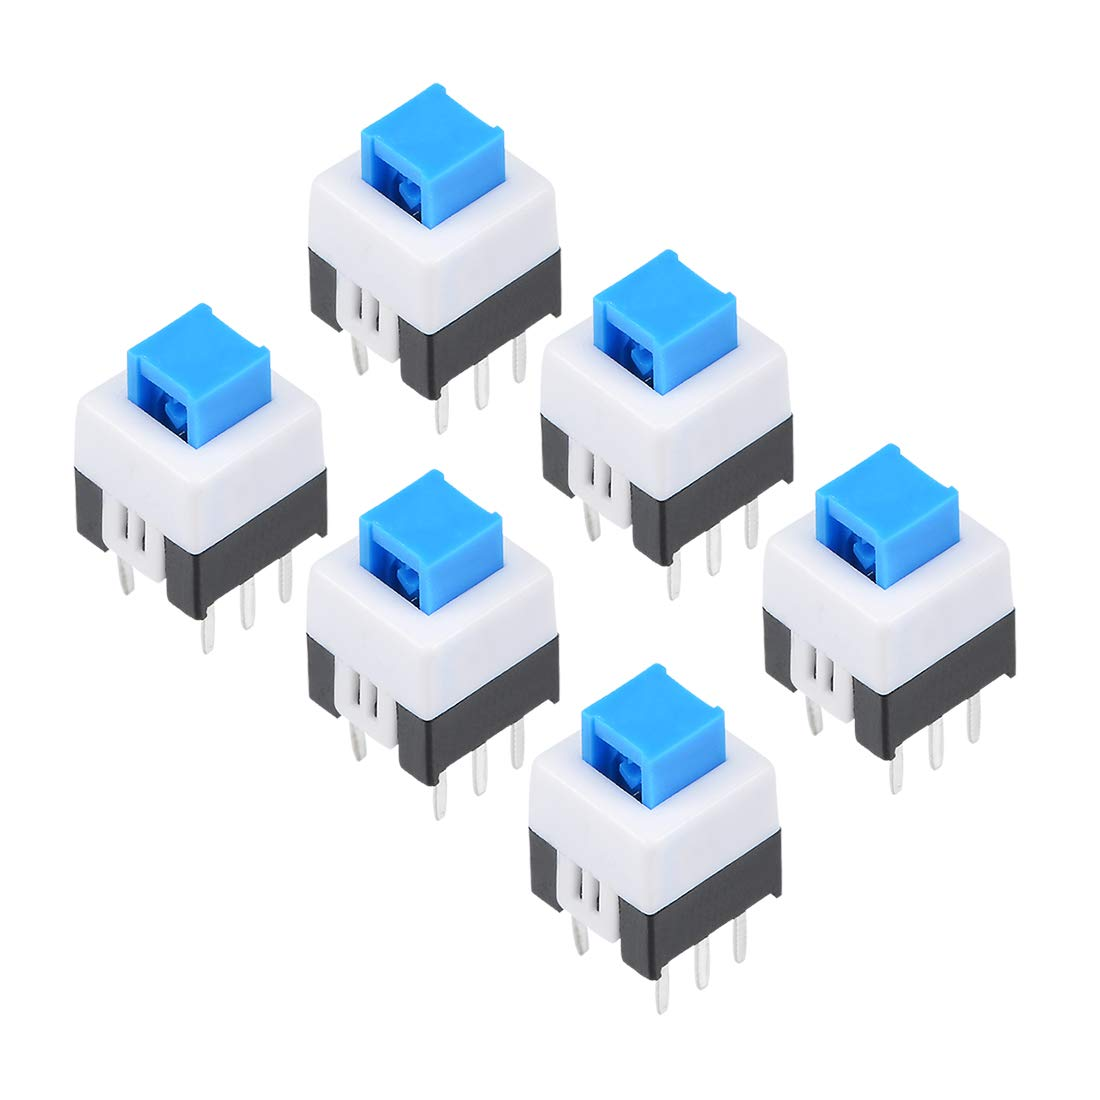 Uxcell 58x58x75mm Pcb Dip Mounting Tact Tactile Push Button Details About Momentary Latching Switch Rectangular Dc Self Lock 6 Pin 10pcs